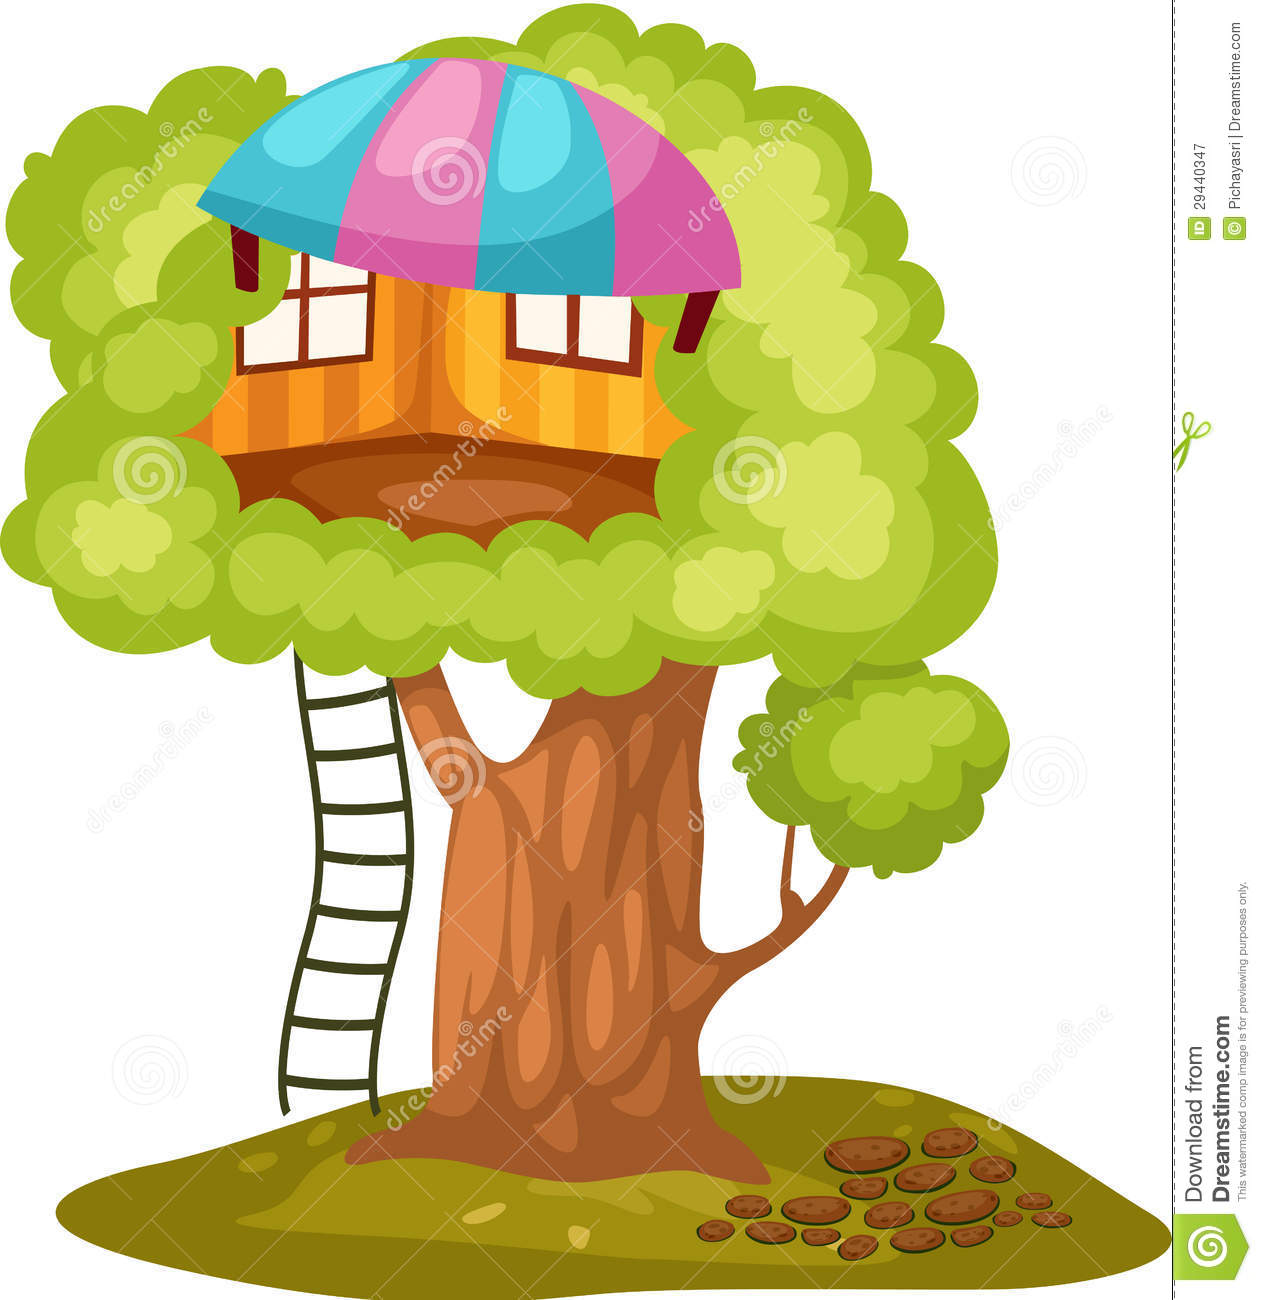 clipart pictures tree house - photo #27